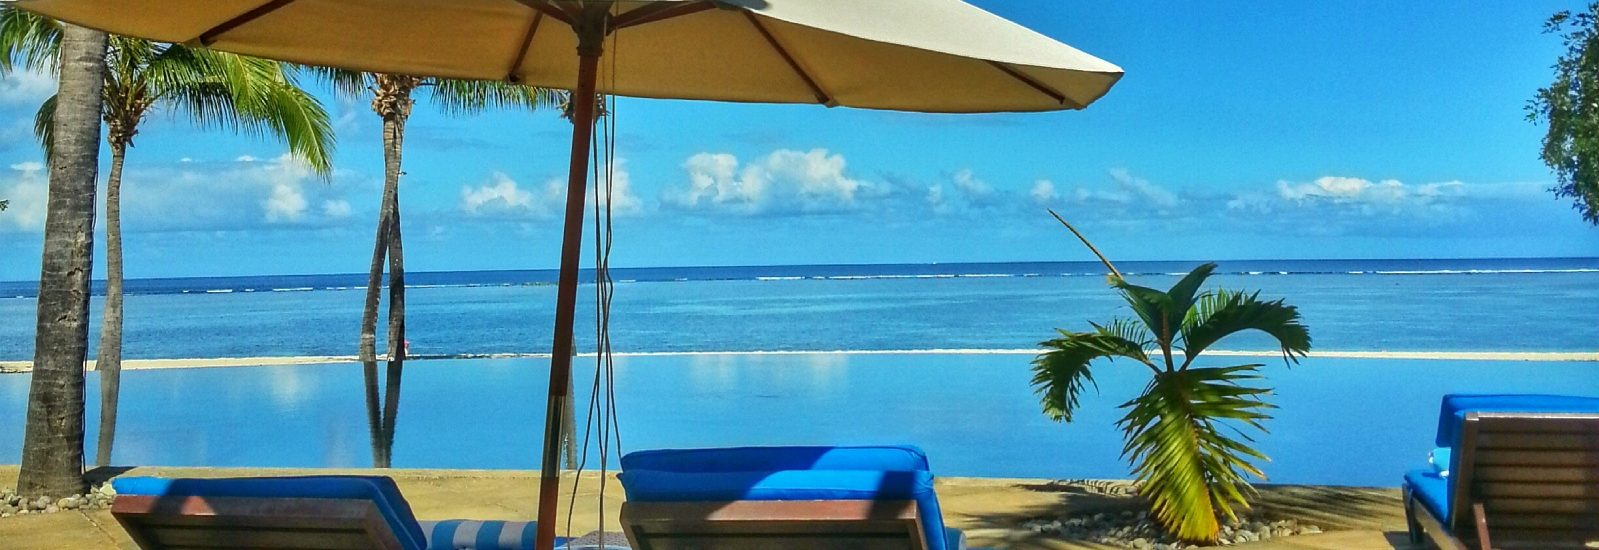 embrace the pace maradiva resort and spa mauritius